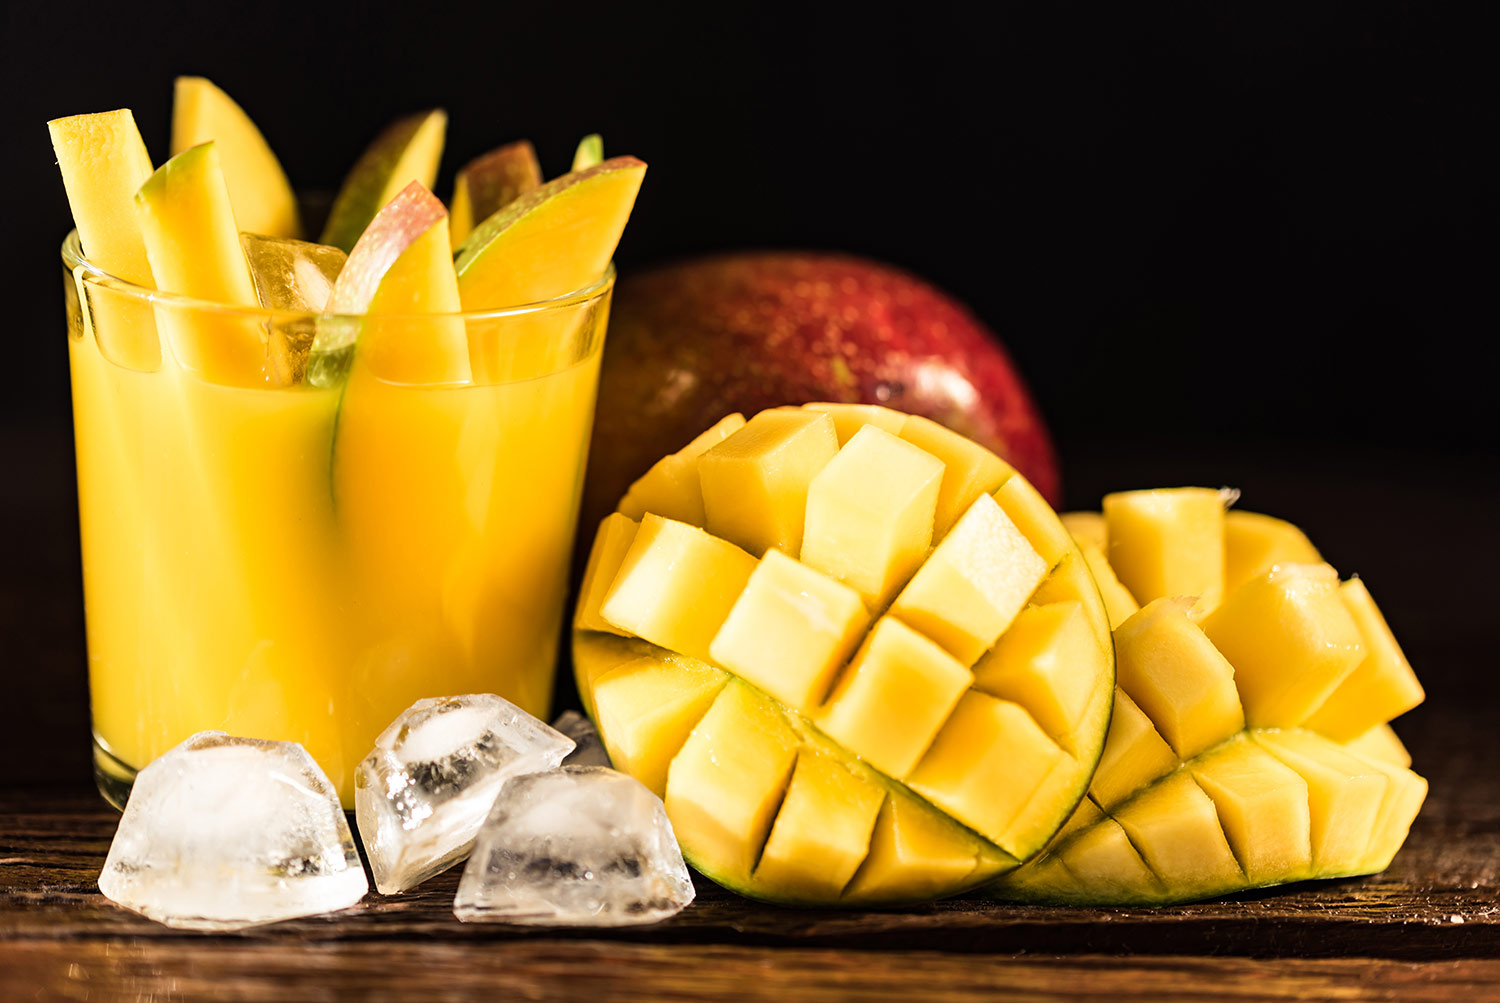 Mangos chopped, sliced and sitting in a glass of mango juice on a wooden cutting board with ice cubes in front of glass